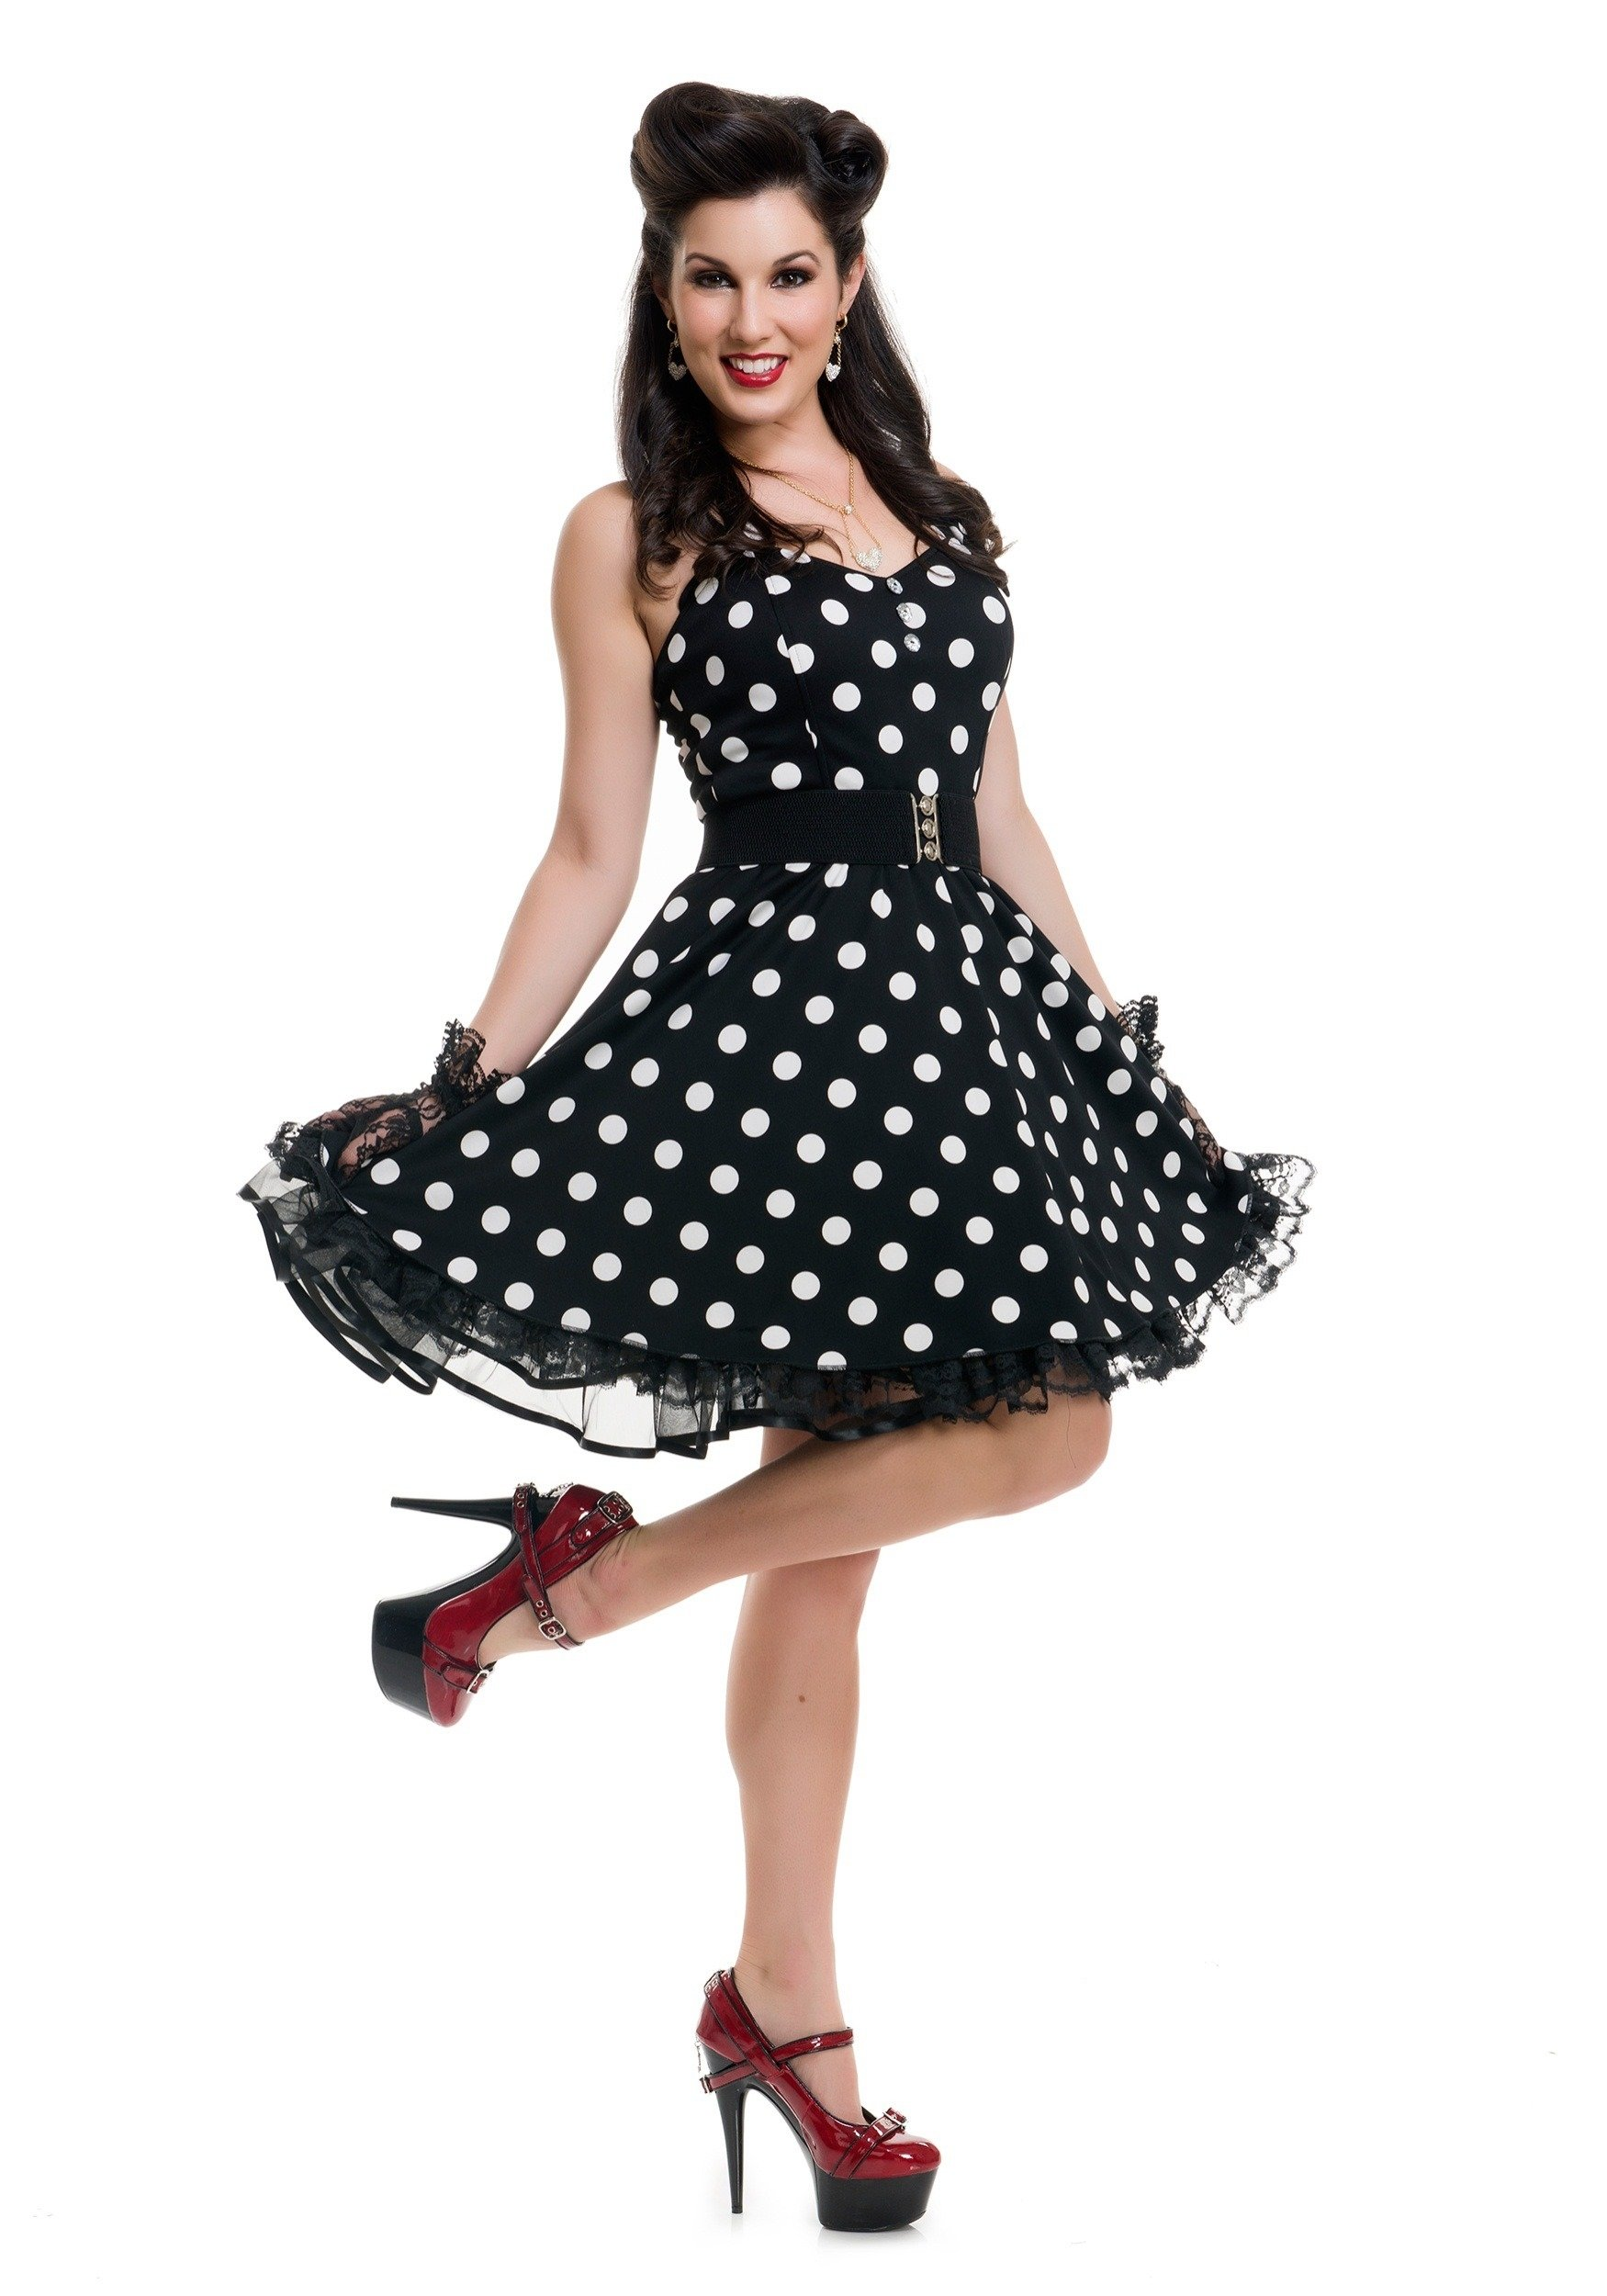 10 Stunning Pin Up Girl Outfit Ideas pin up girl costumes sexy womens halloween costume 2